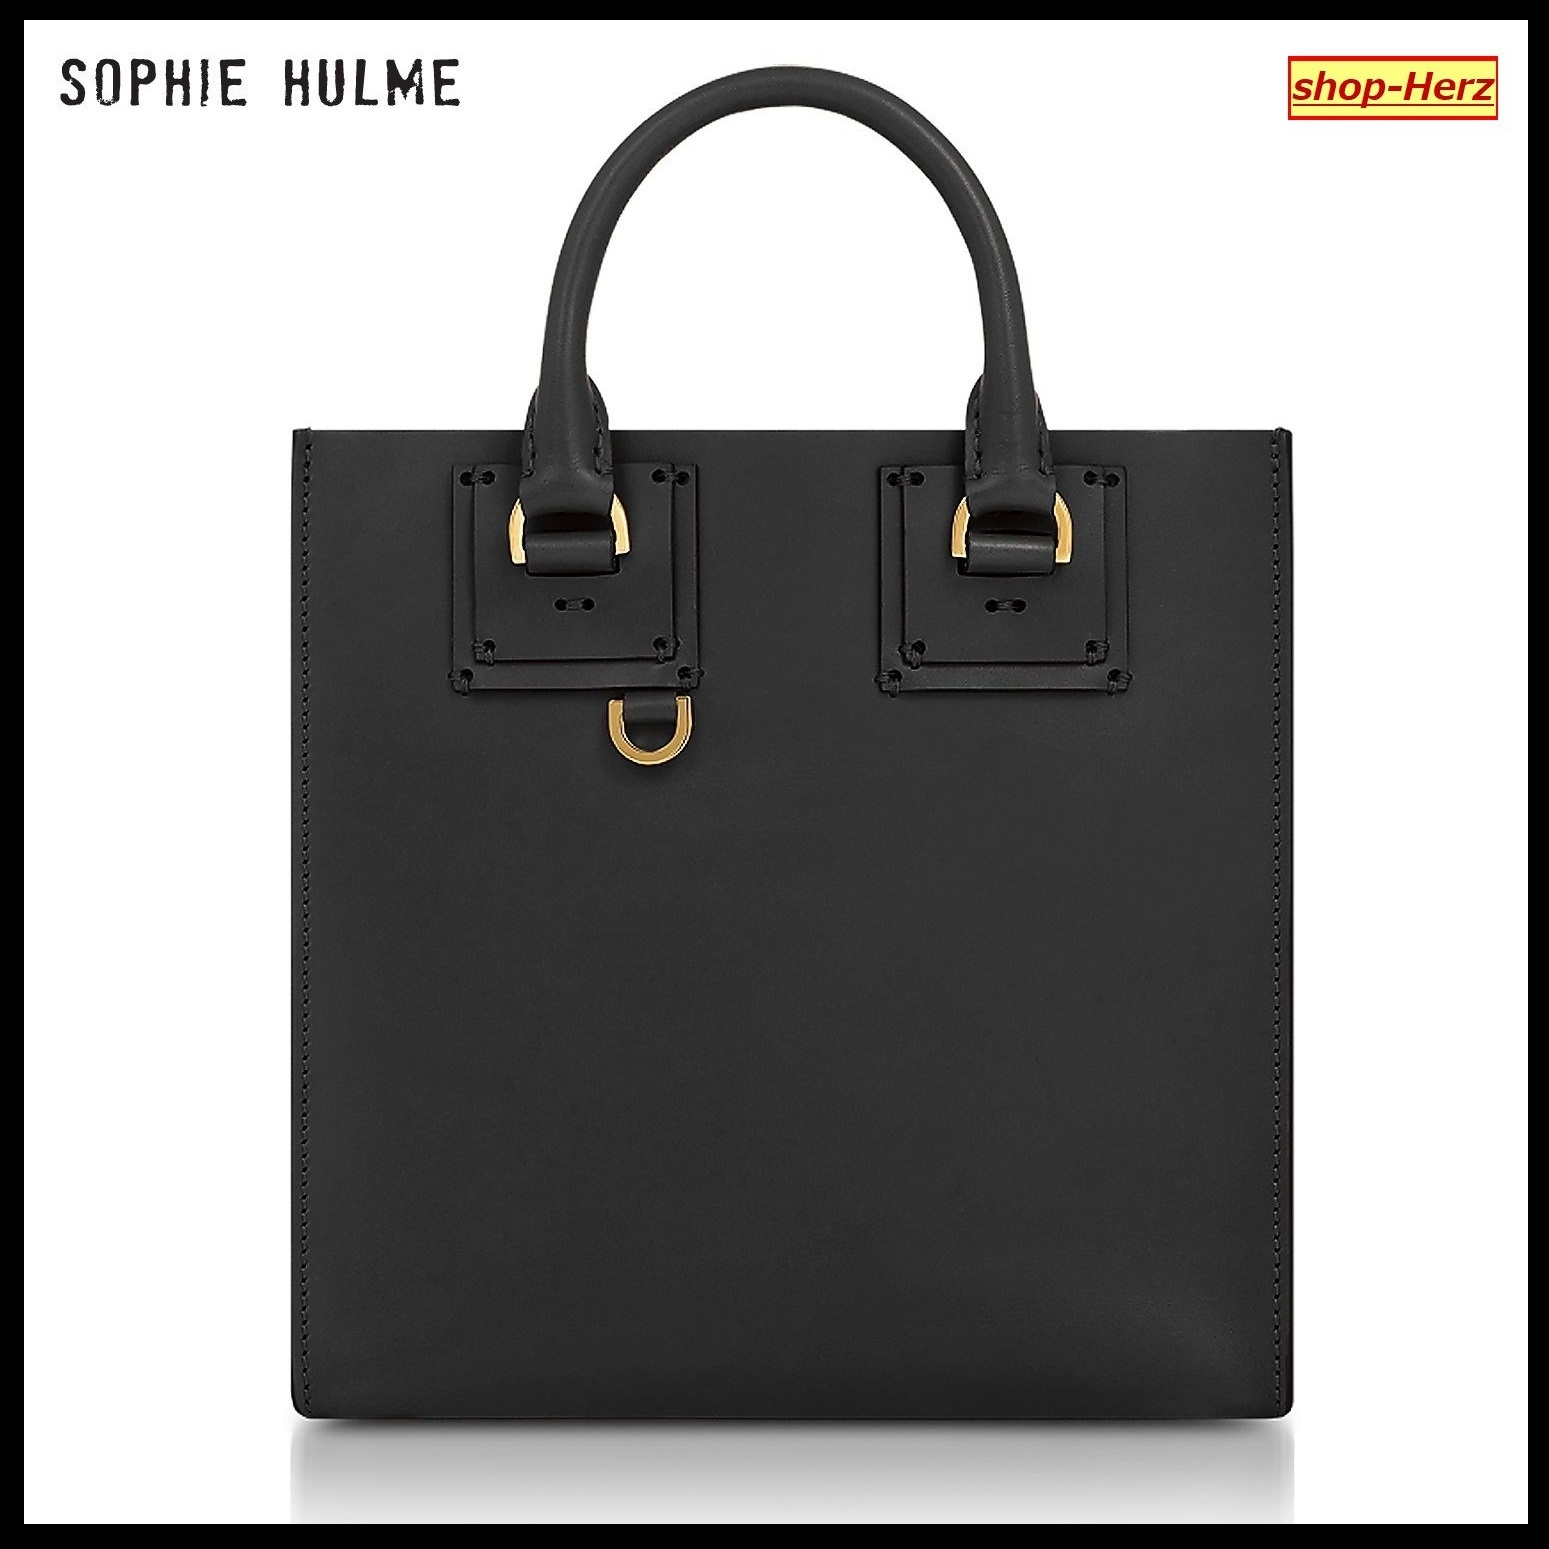 ★SOPHIE HULME★ Black Albion Square トートバッグ 関税込